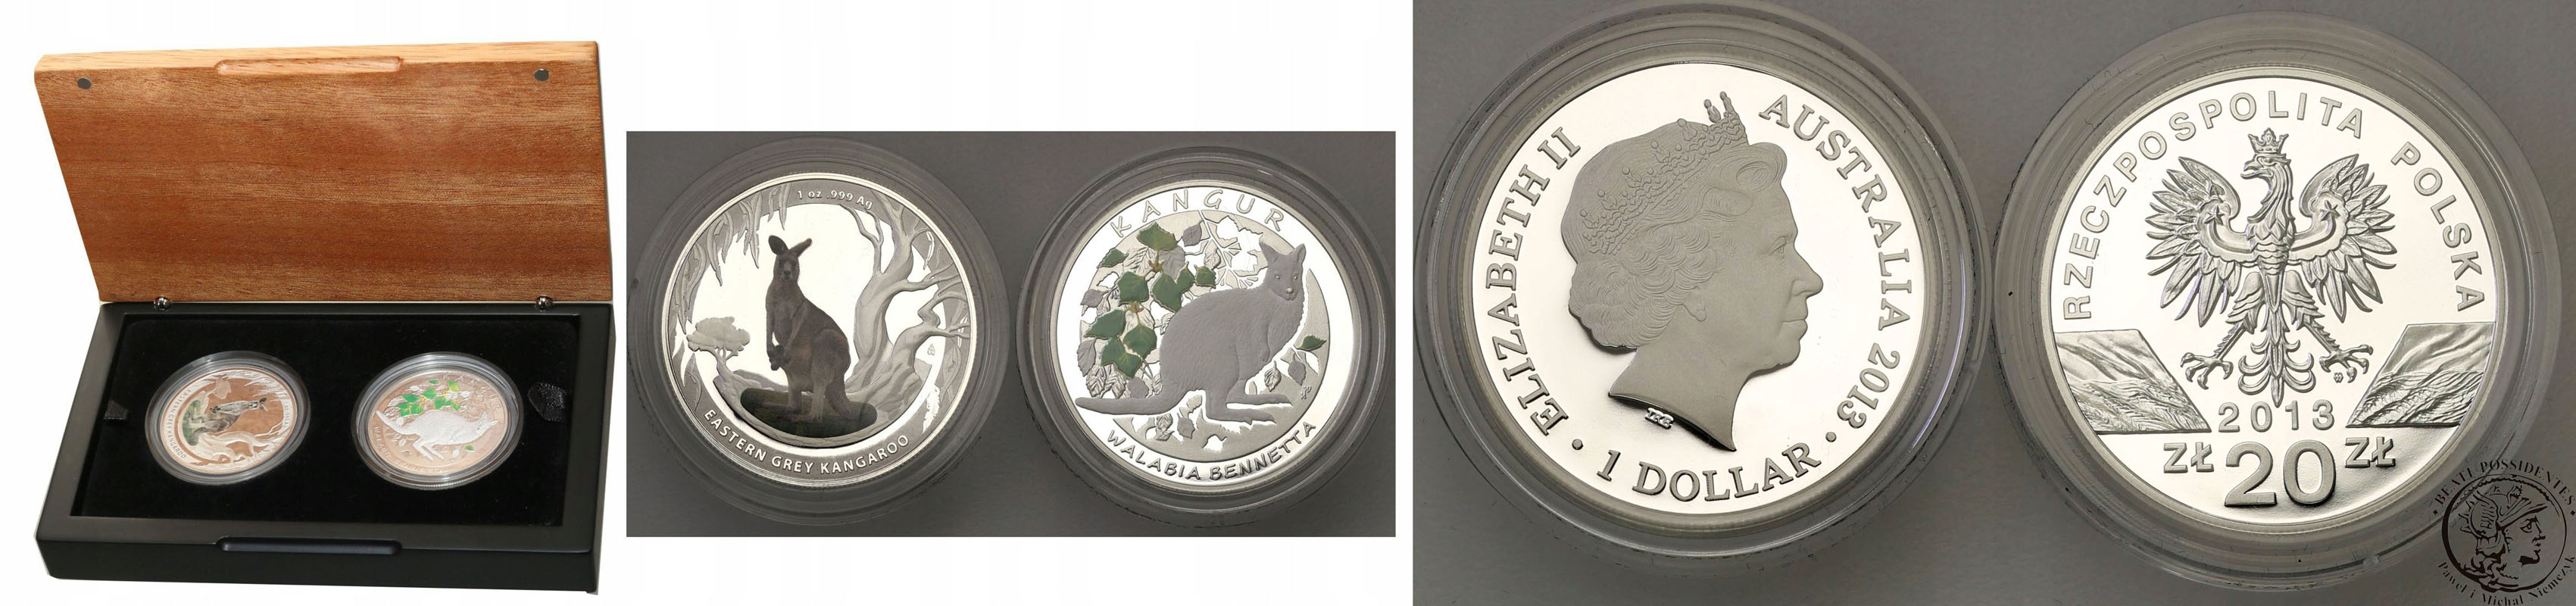 $1 KANGAROO SILVER FROSTED UNCIRCULATED 1oz COIN ON CARD COMPLETE!! 1997 RAM